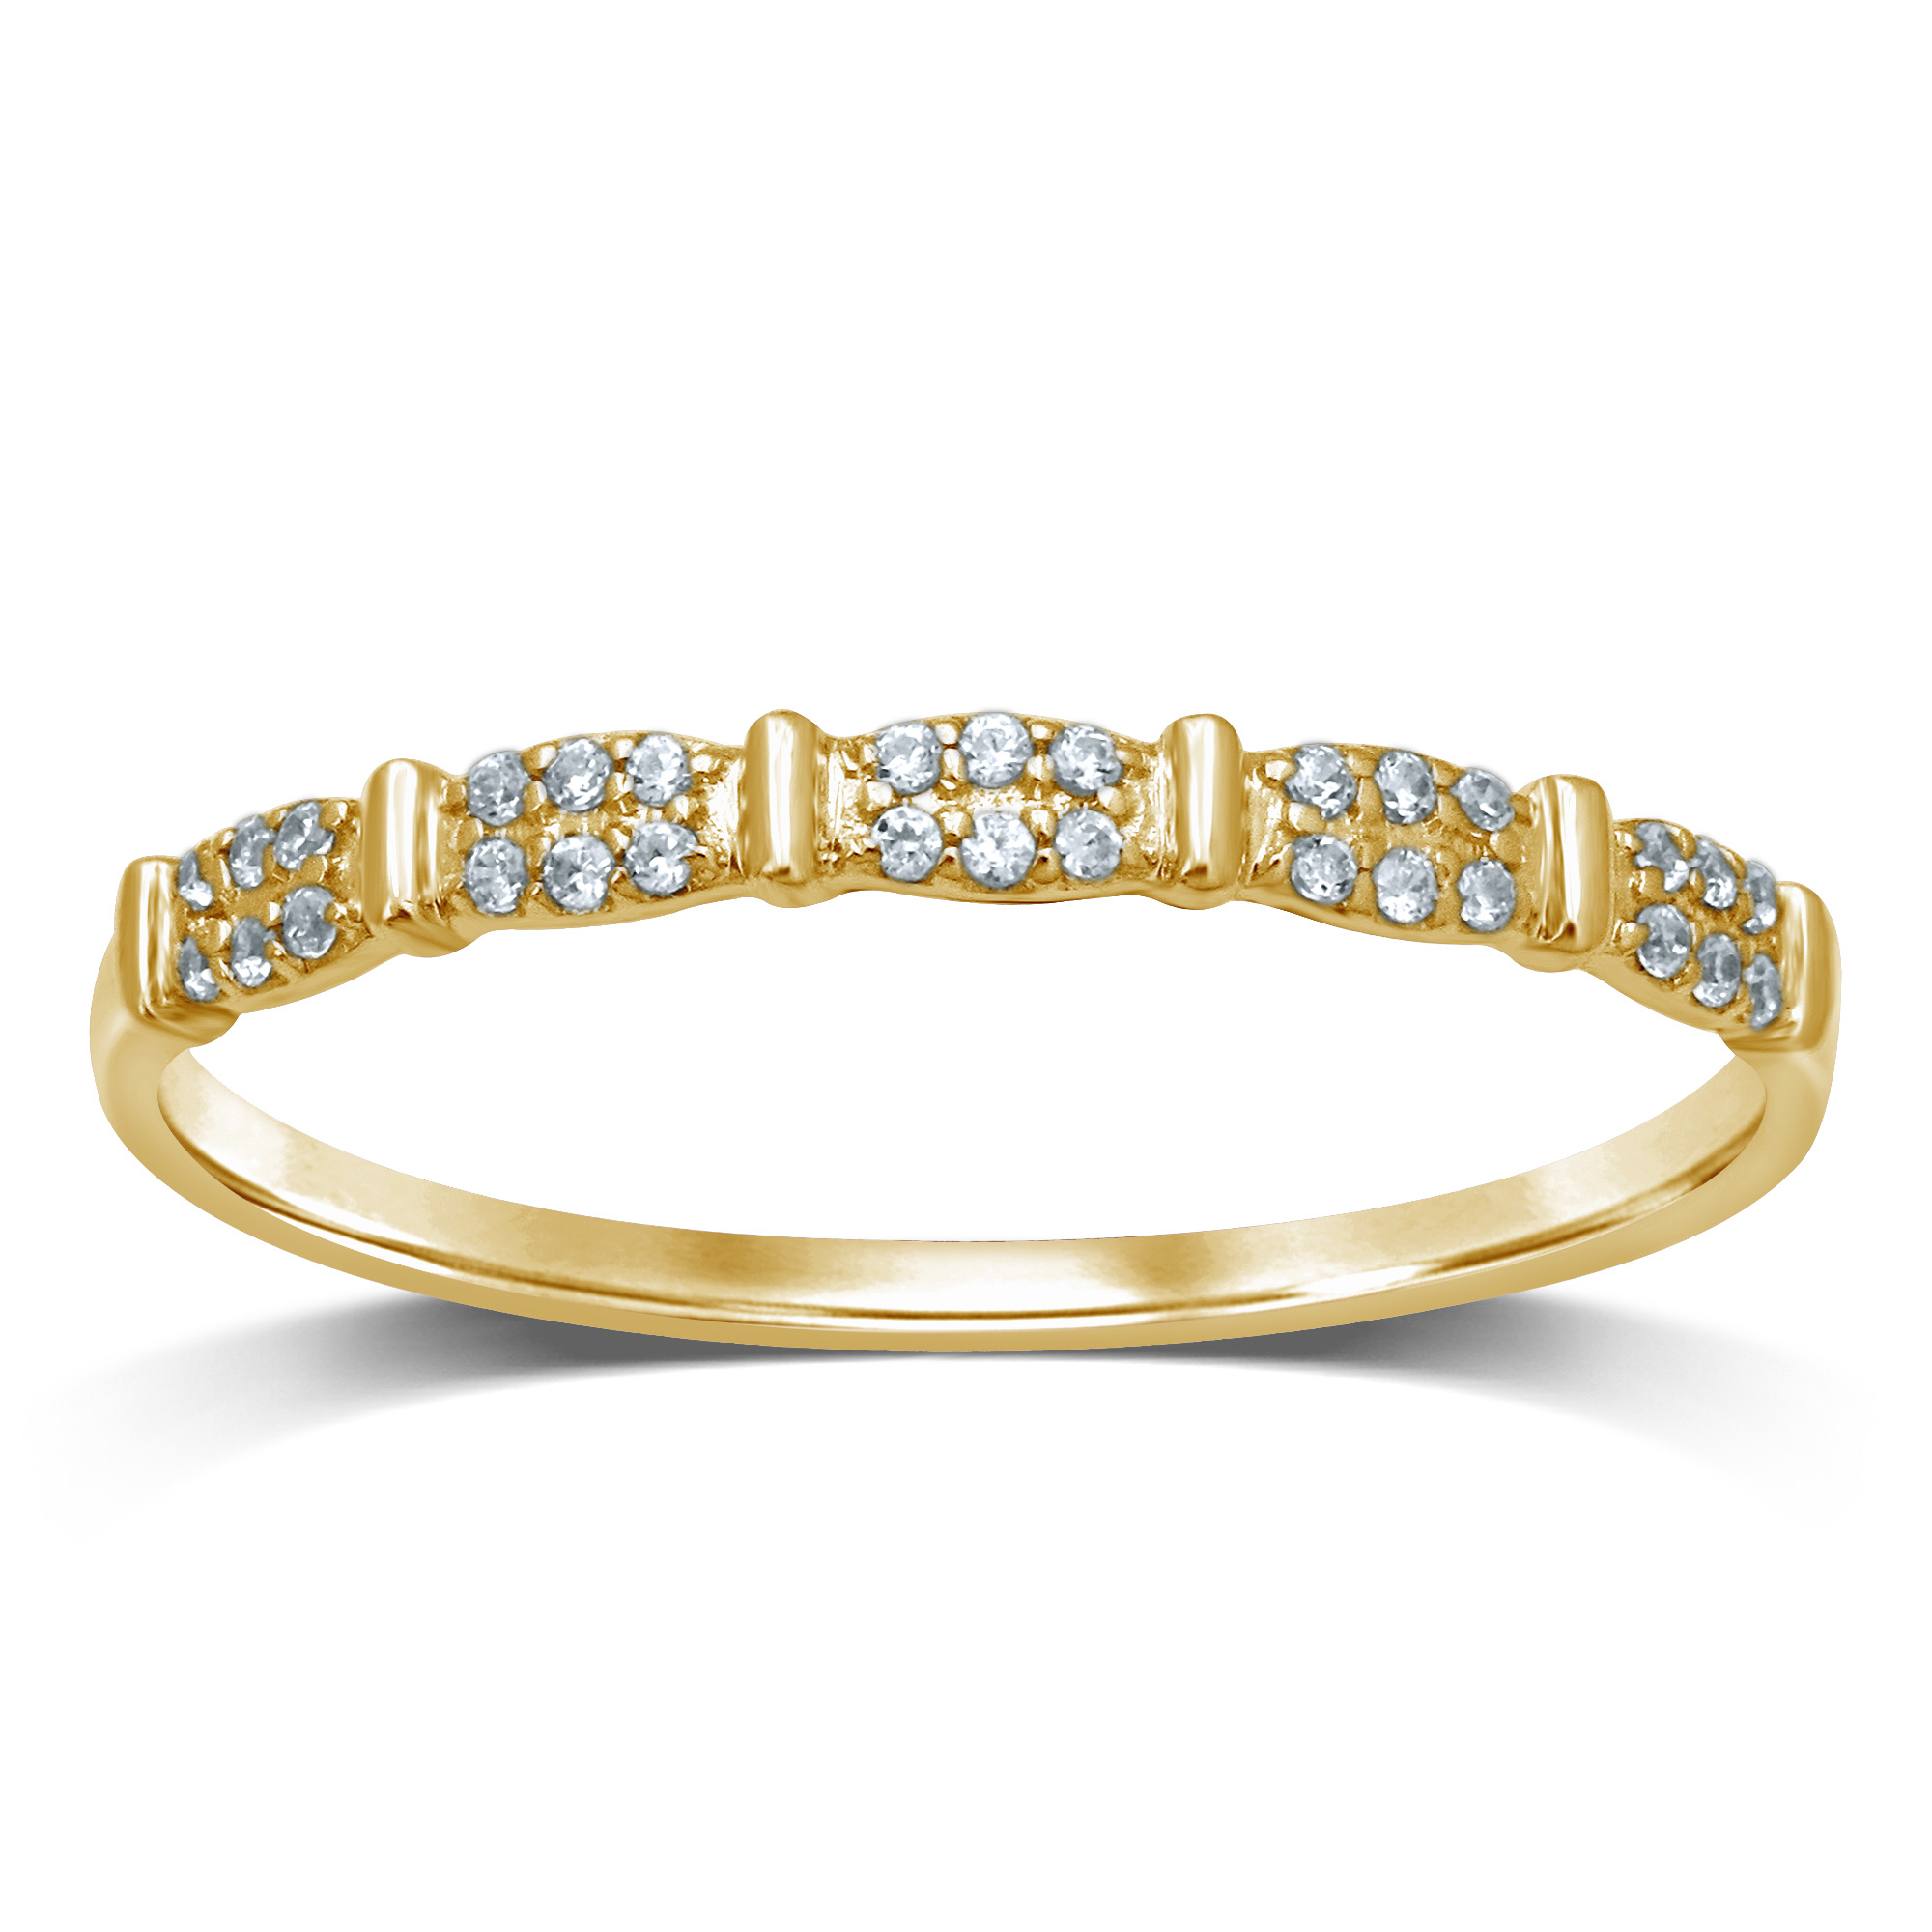 9ct Yellow Gold Diamond  Ring with 30 Brilliant Diamonds